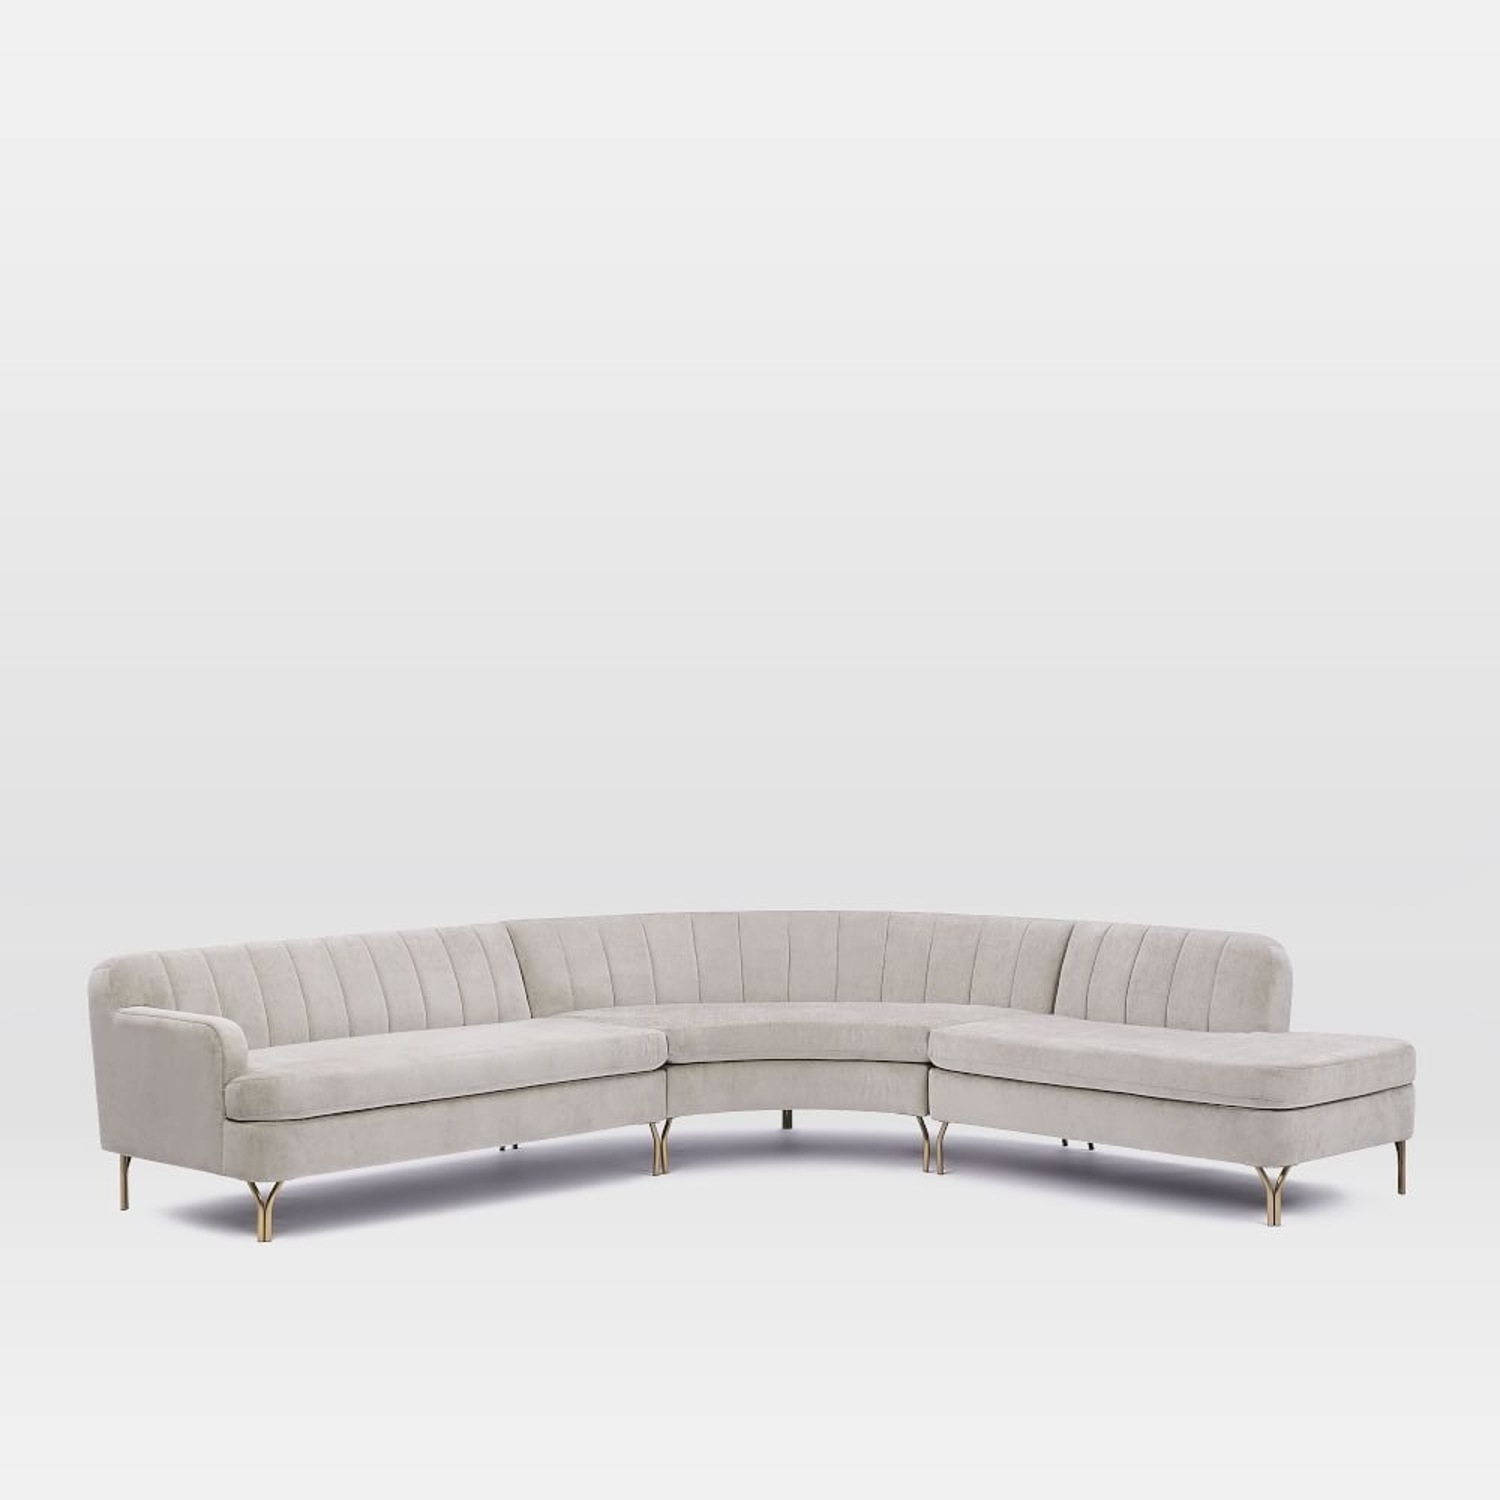 West Elm Valencia 3-piece Sectional Couch